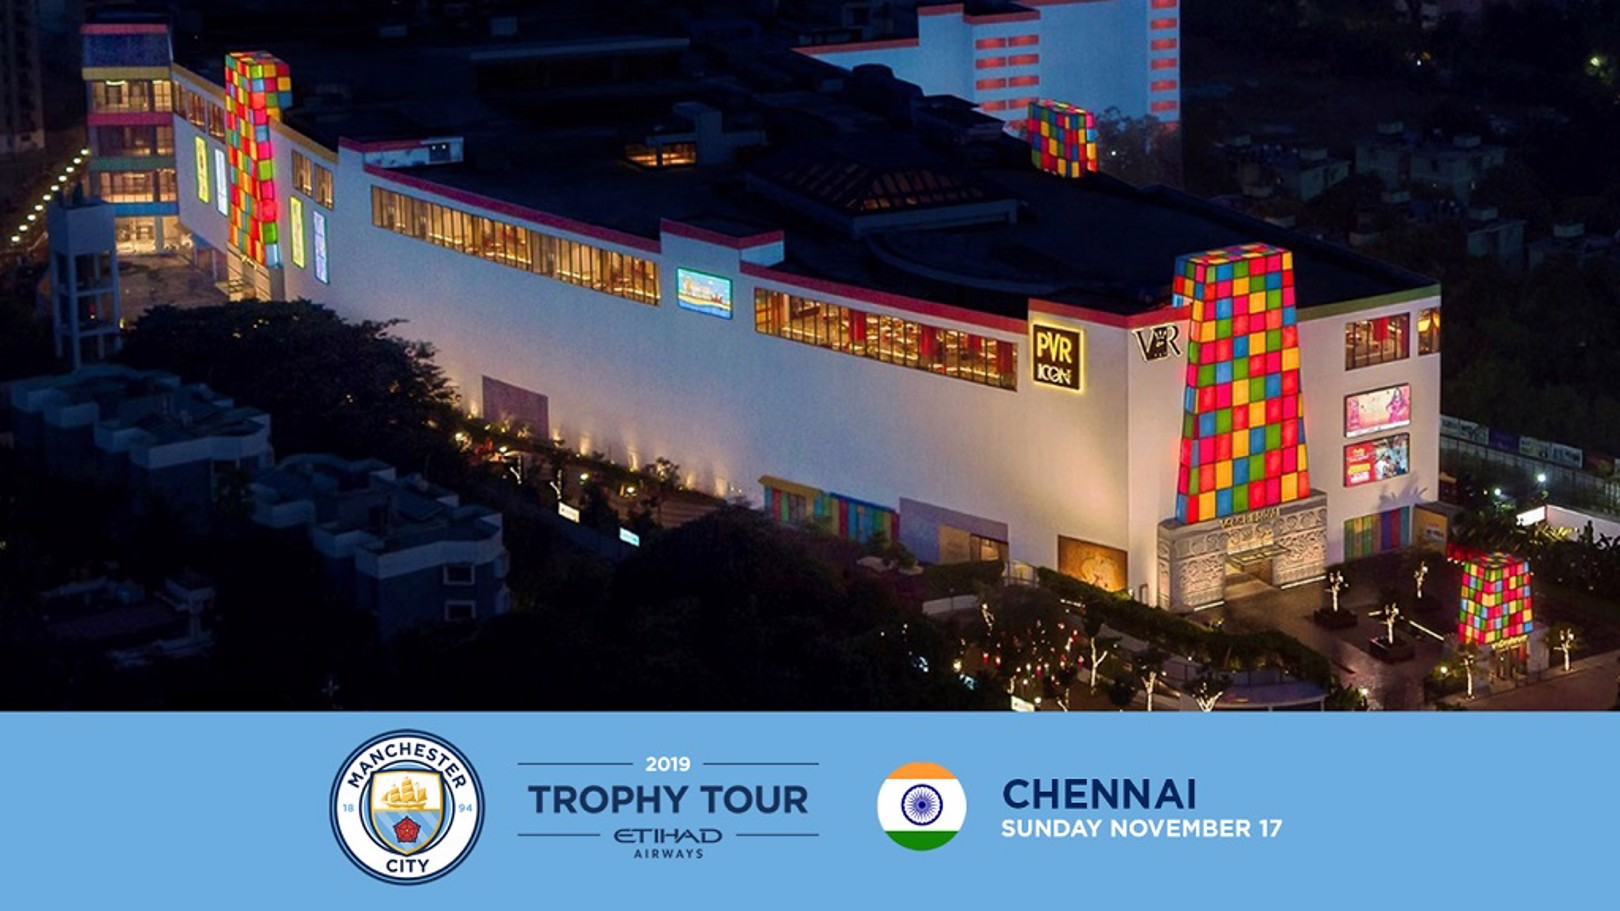 Trophy Tour is heading to India!